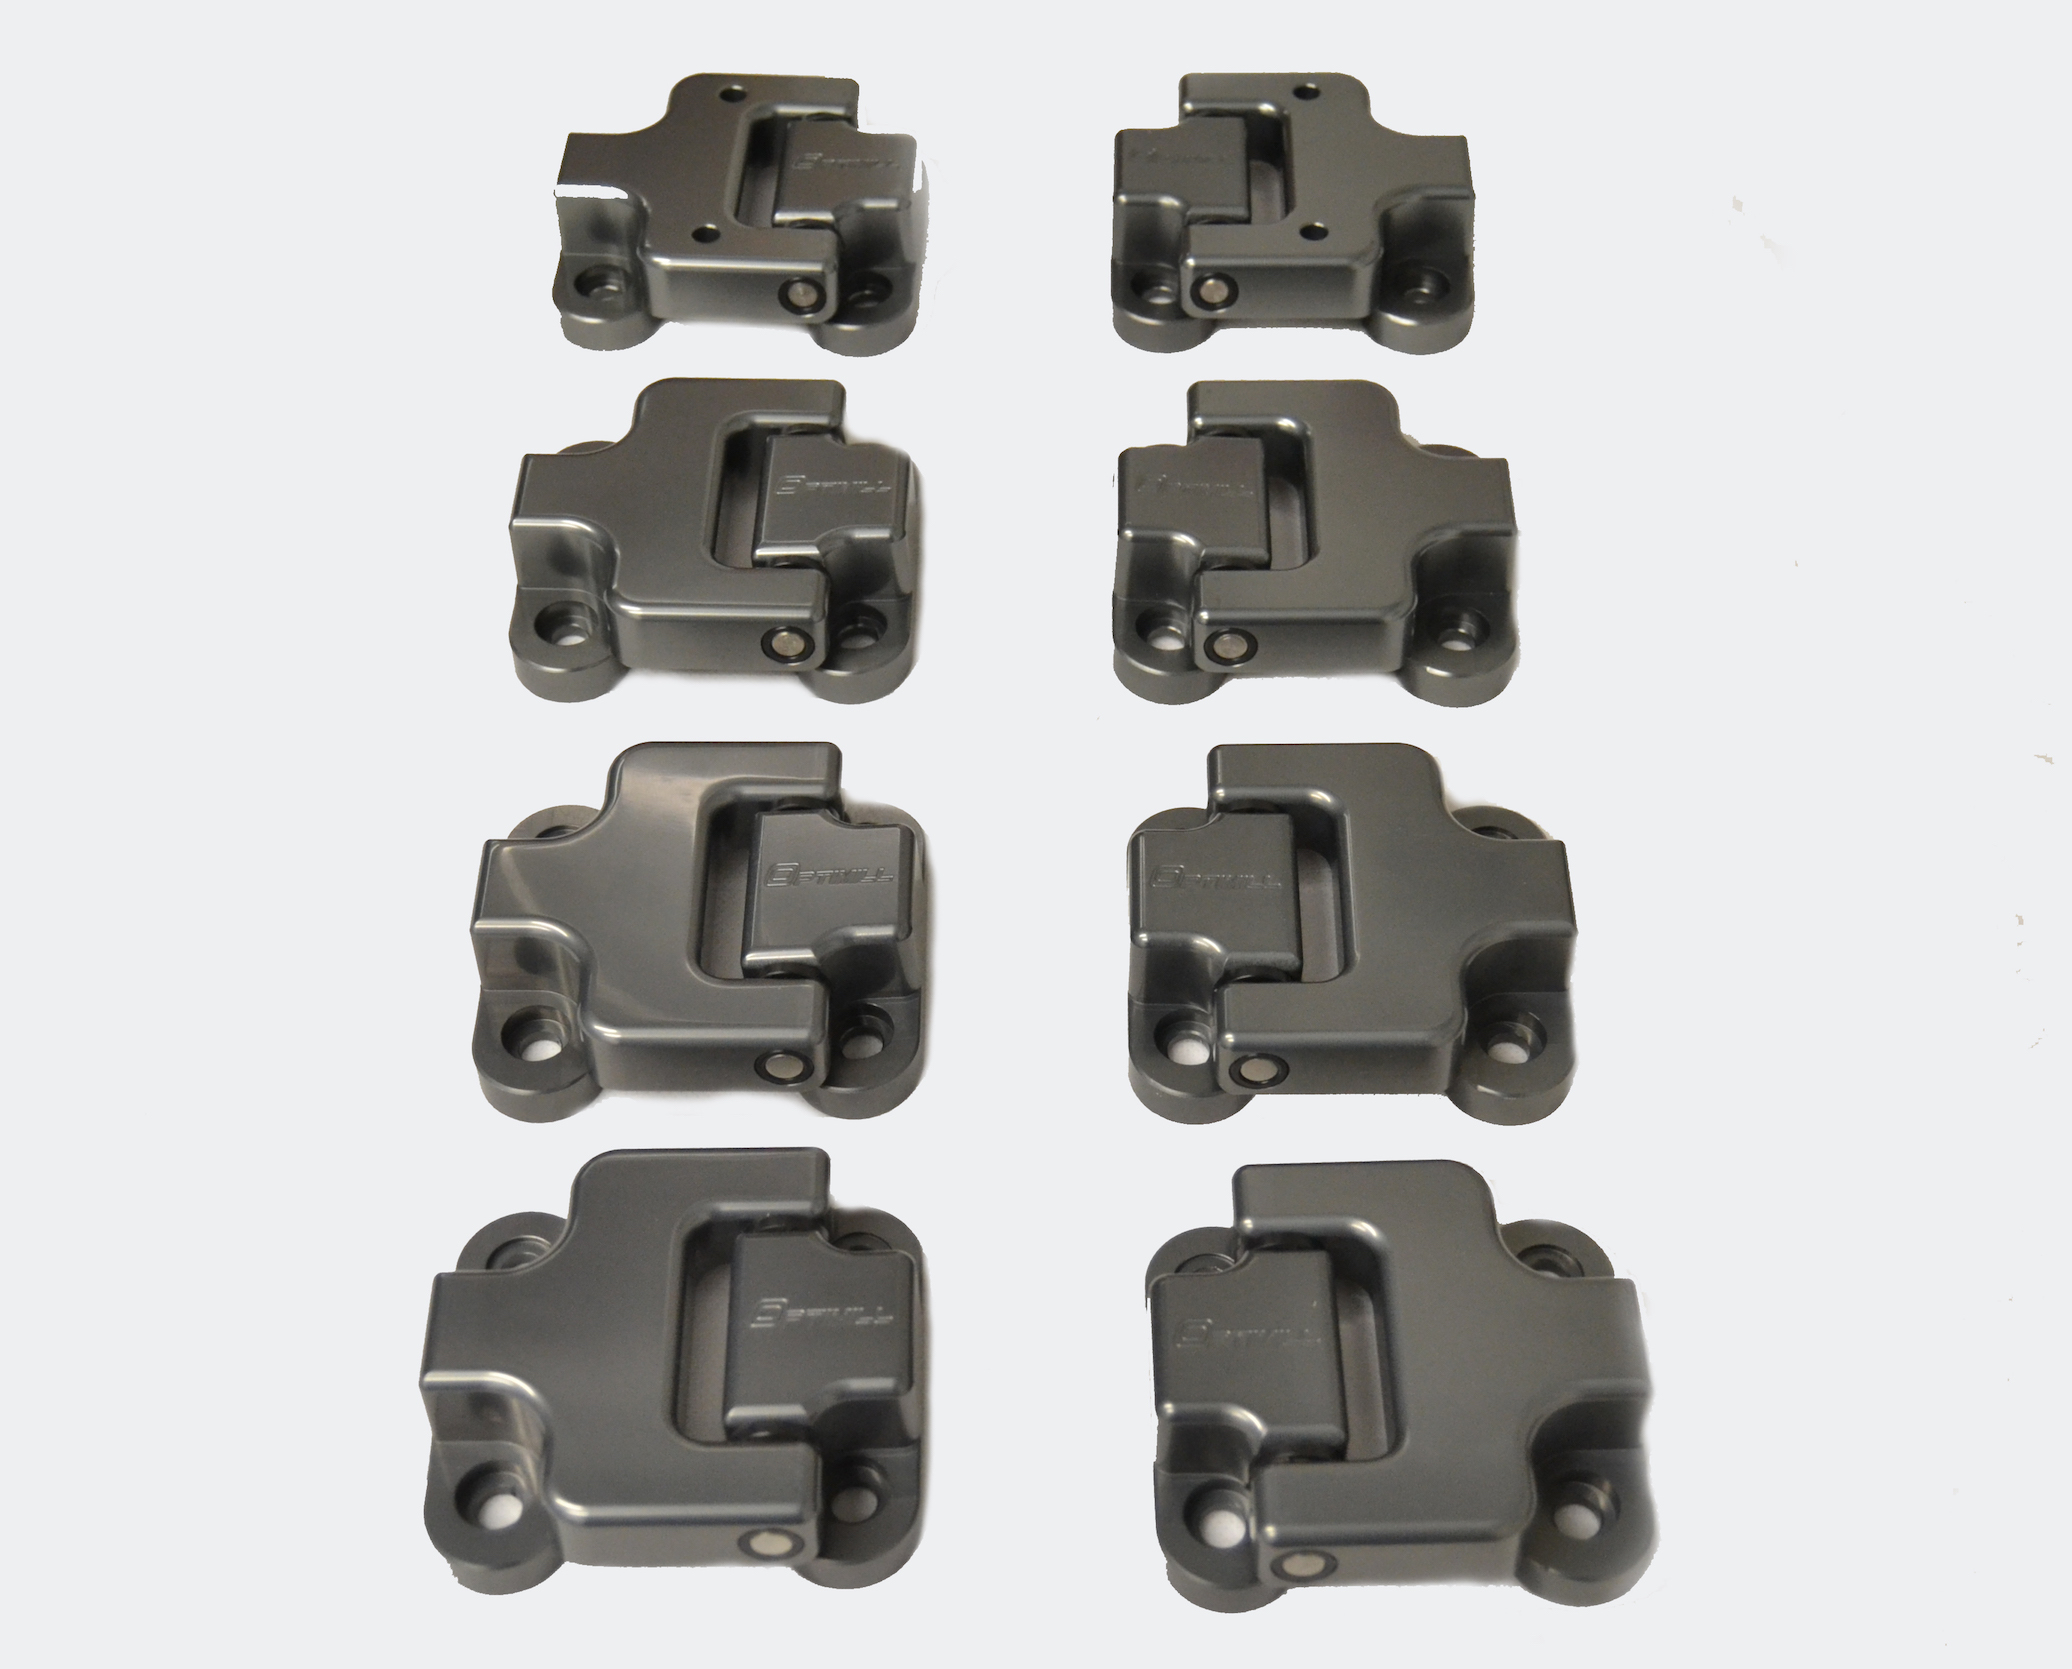 Landrover Defender Front Door Hinges 110 set of 8 in New Grey